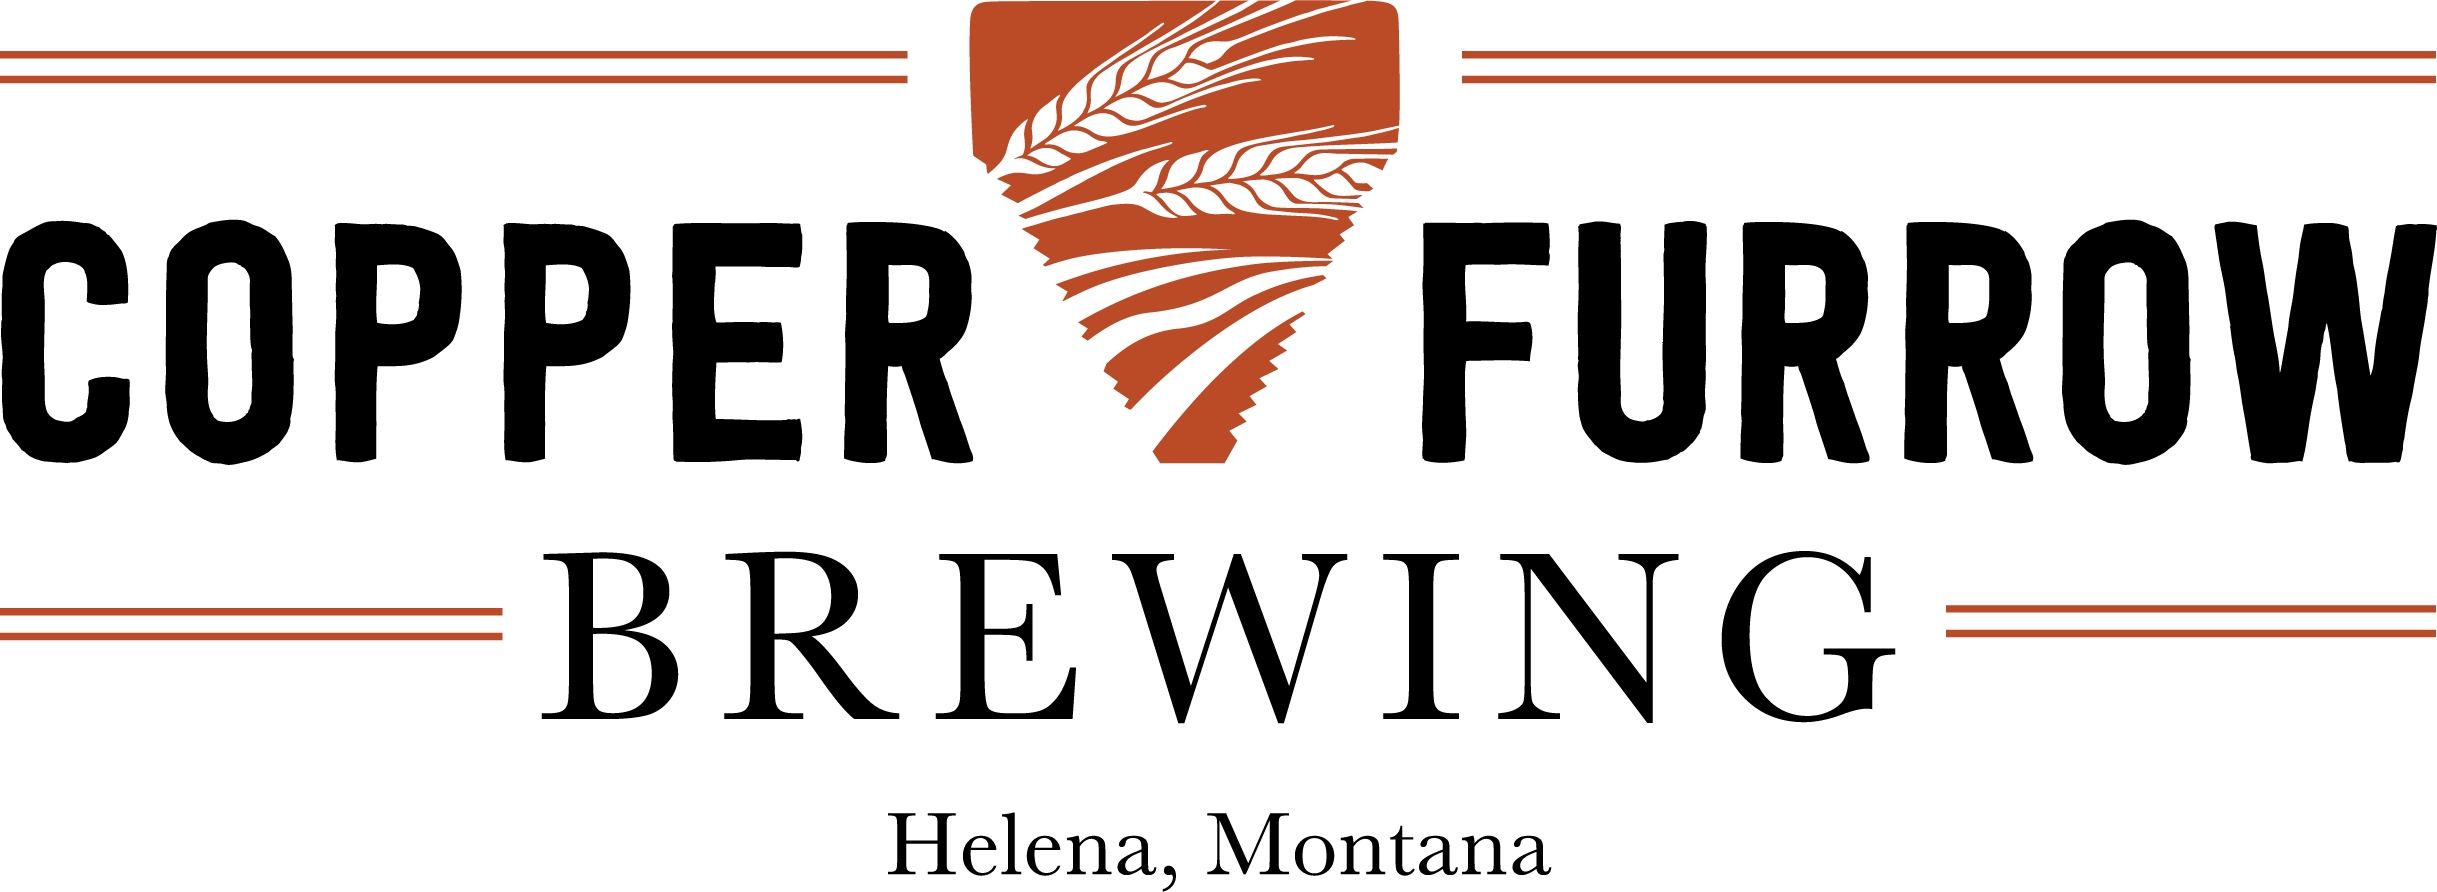 Copper Furrow Brewing